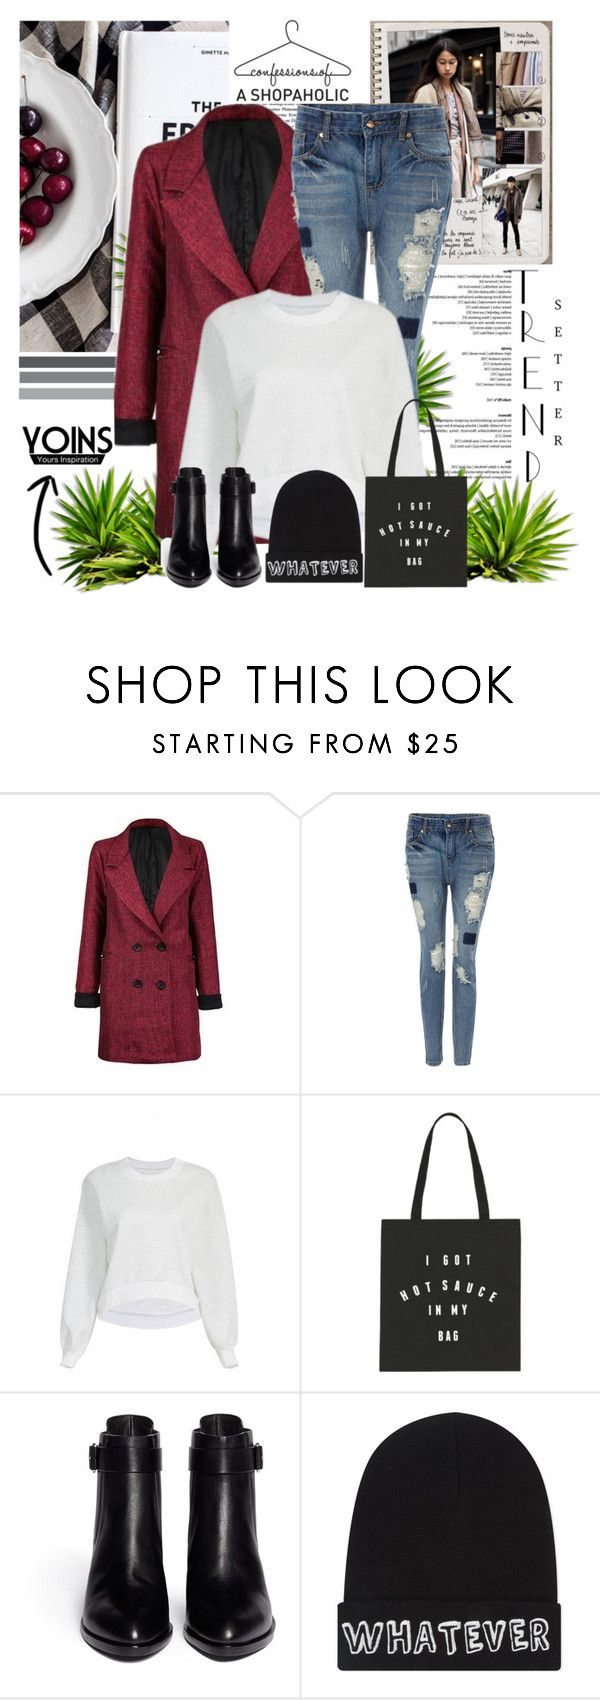 """Yoins 25"" by lara-fam ❤ liked on Polyvore featuring Garance Doré, Alexander Wang, Local Heroes, vintage, women's clothing, women, female, woman, misses and juniors"